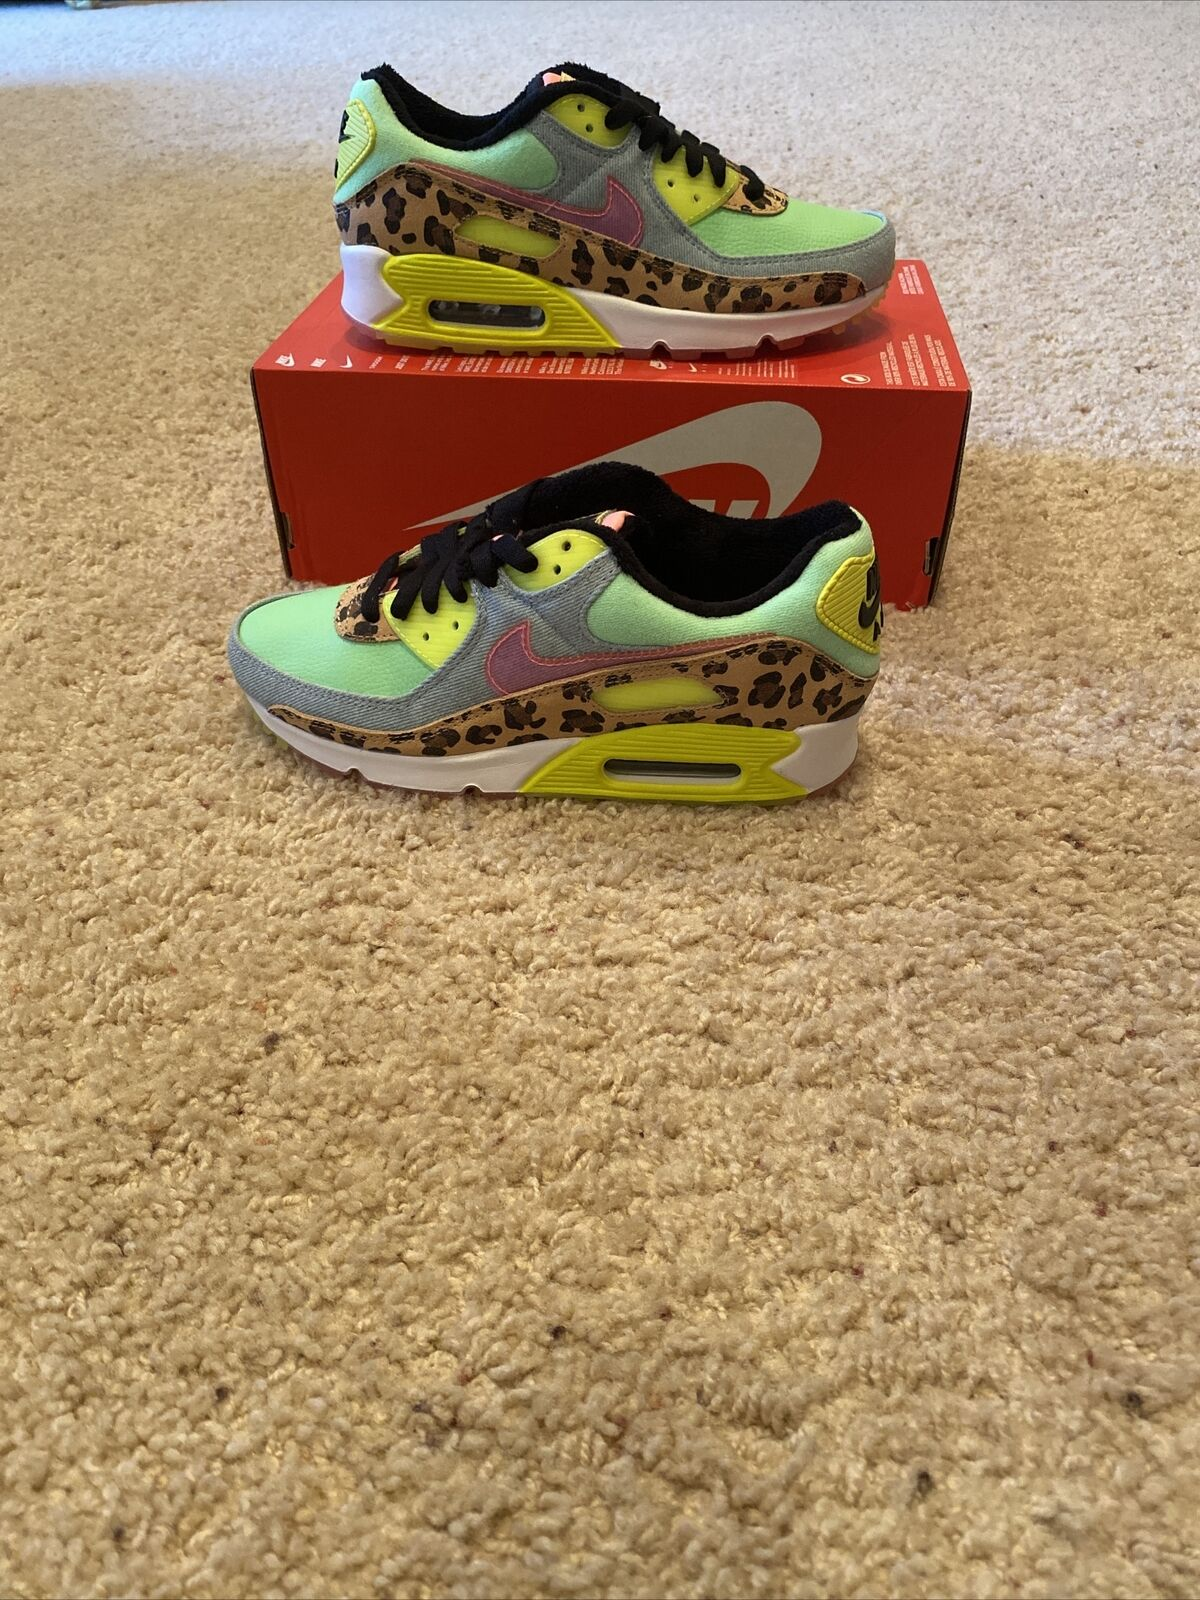 Size 8 - Nike Air Max 90 LX Illusion Green 2020 for sale online   eBay